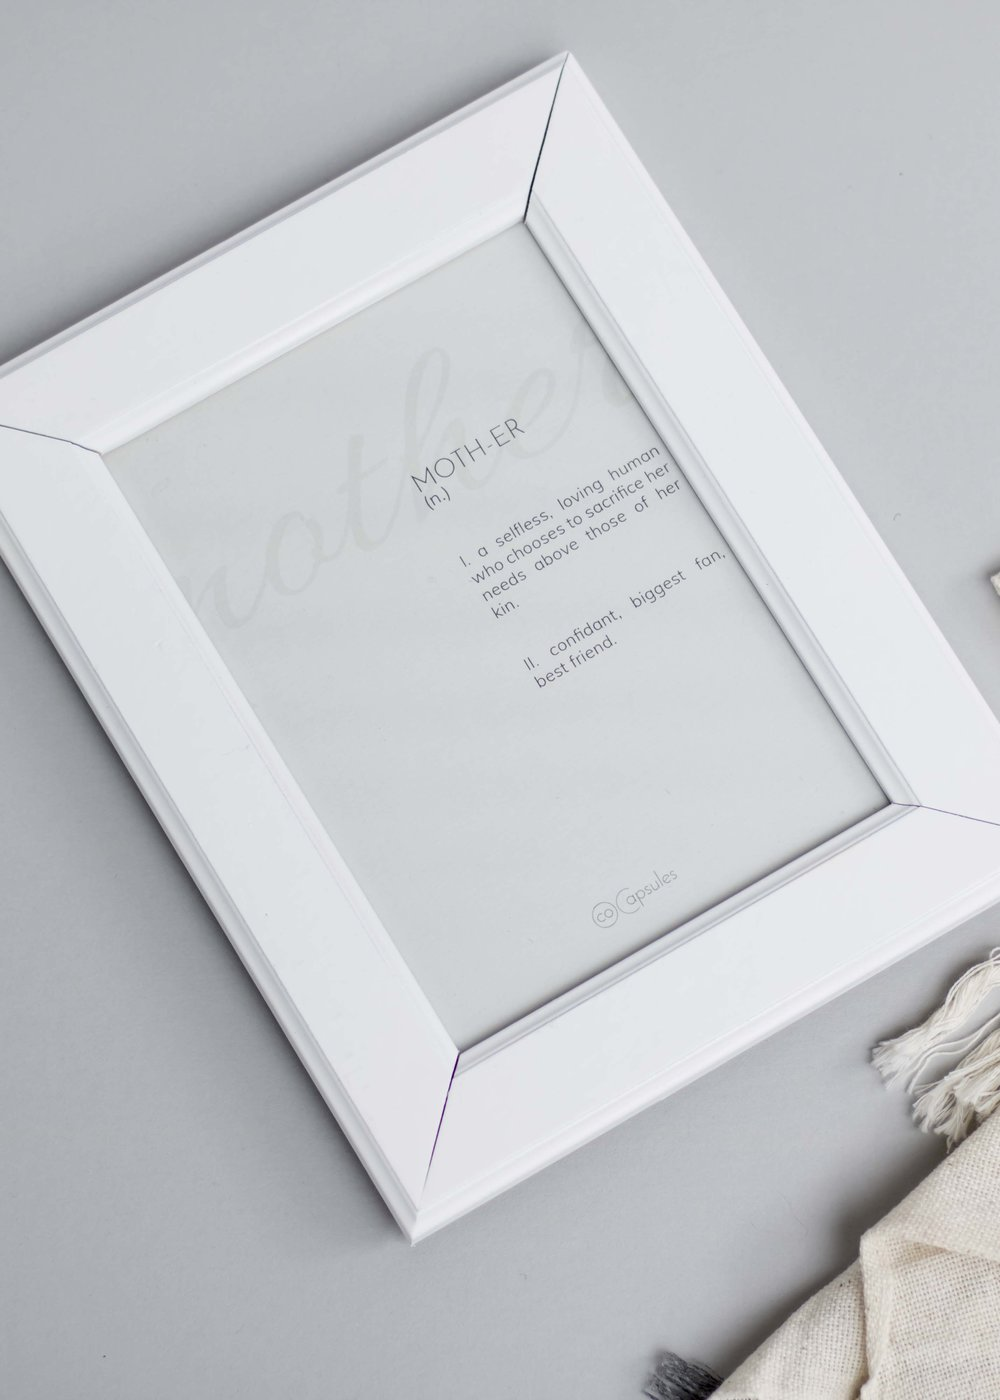 give your mom a daily reminder of what she means to you with our CoCapsules mother print displayed in a restored frame, available in our  sweet sentiments gift capsule .